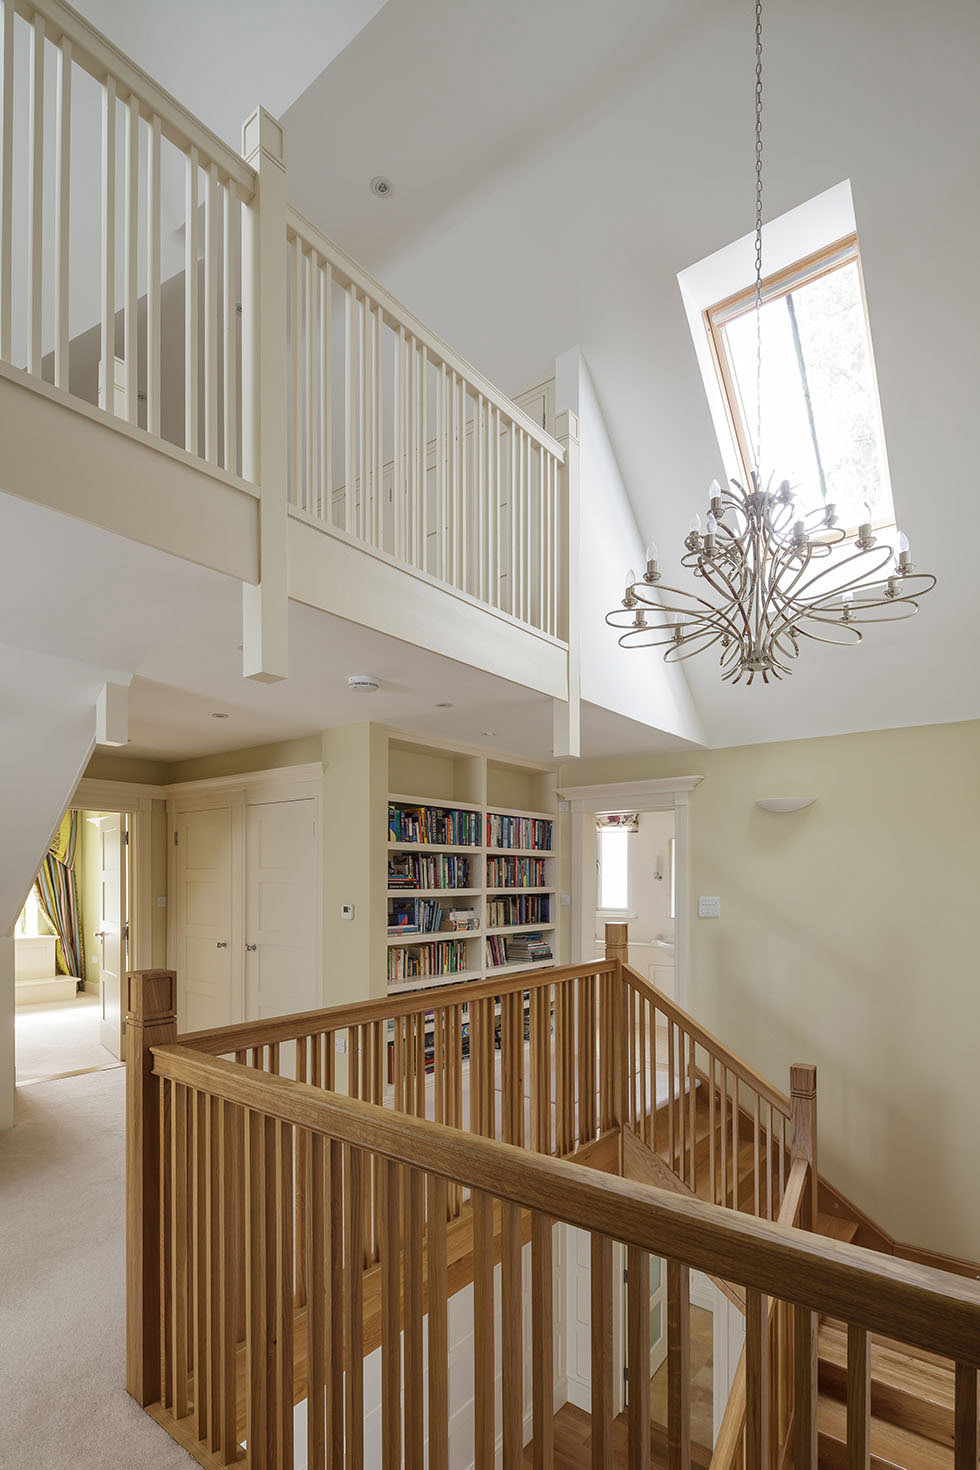 galleried landing and mezzanine in arts and crafts home